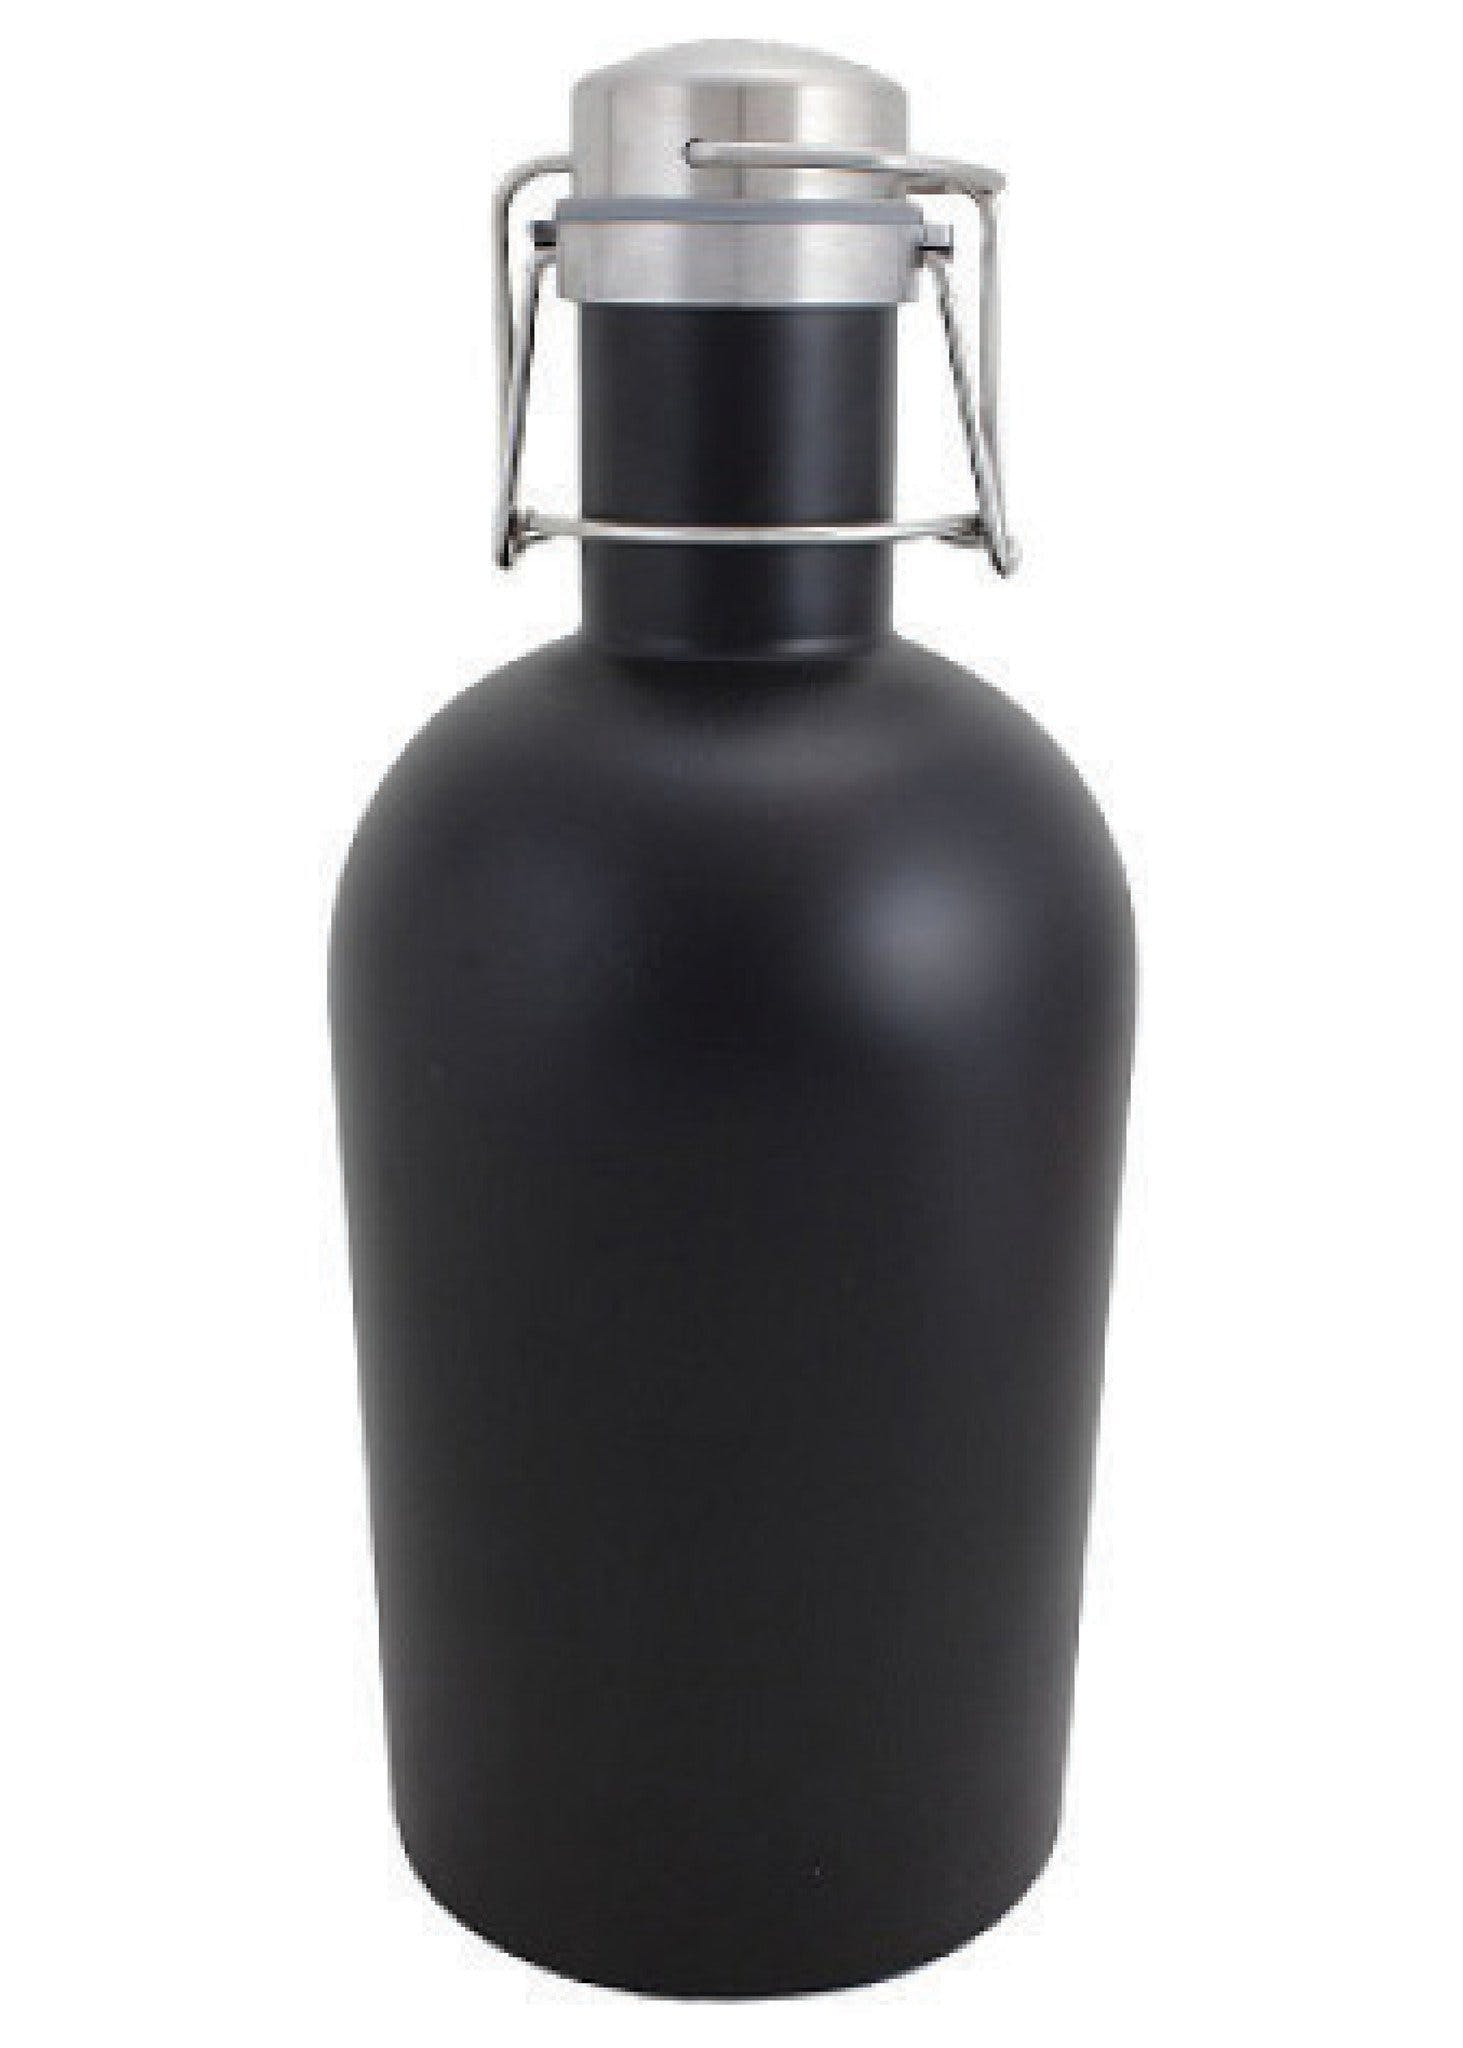 64 oz. Matte Black Growler w/ Handle #SG-M-07 - sold by Clearwater Gear